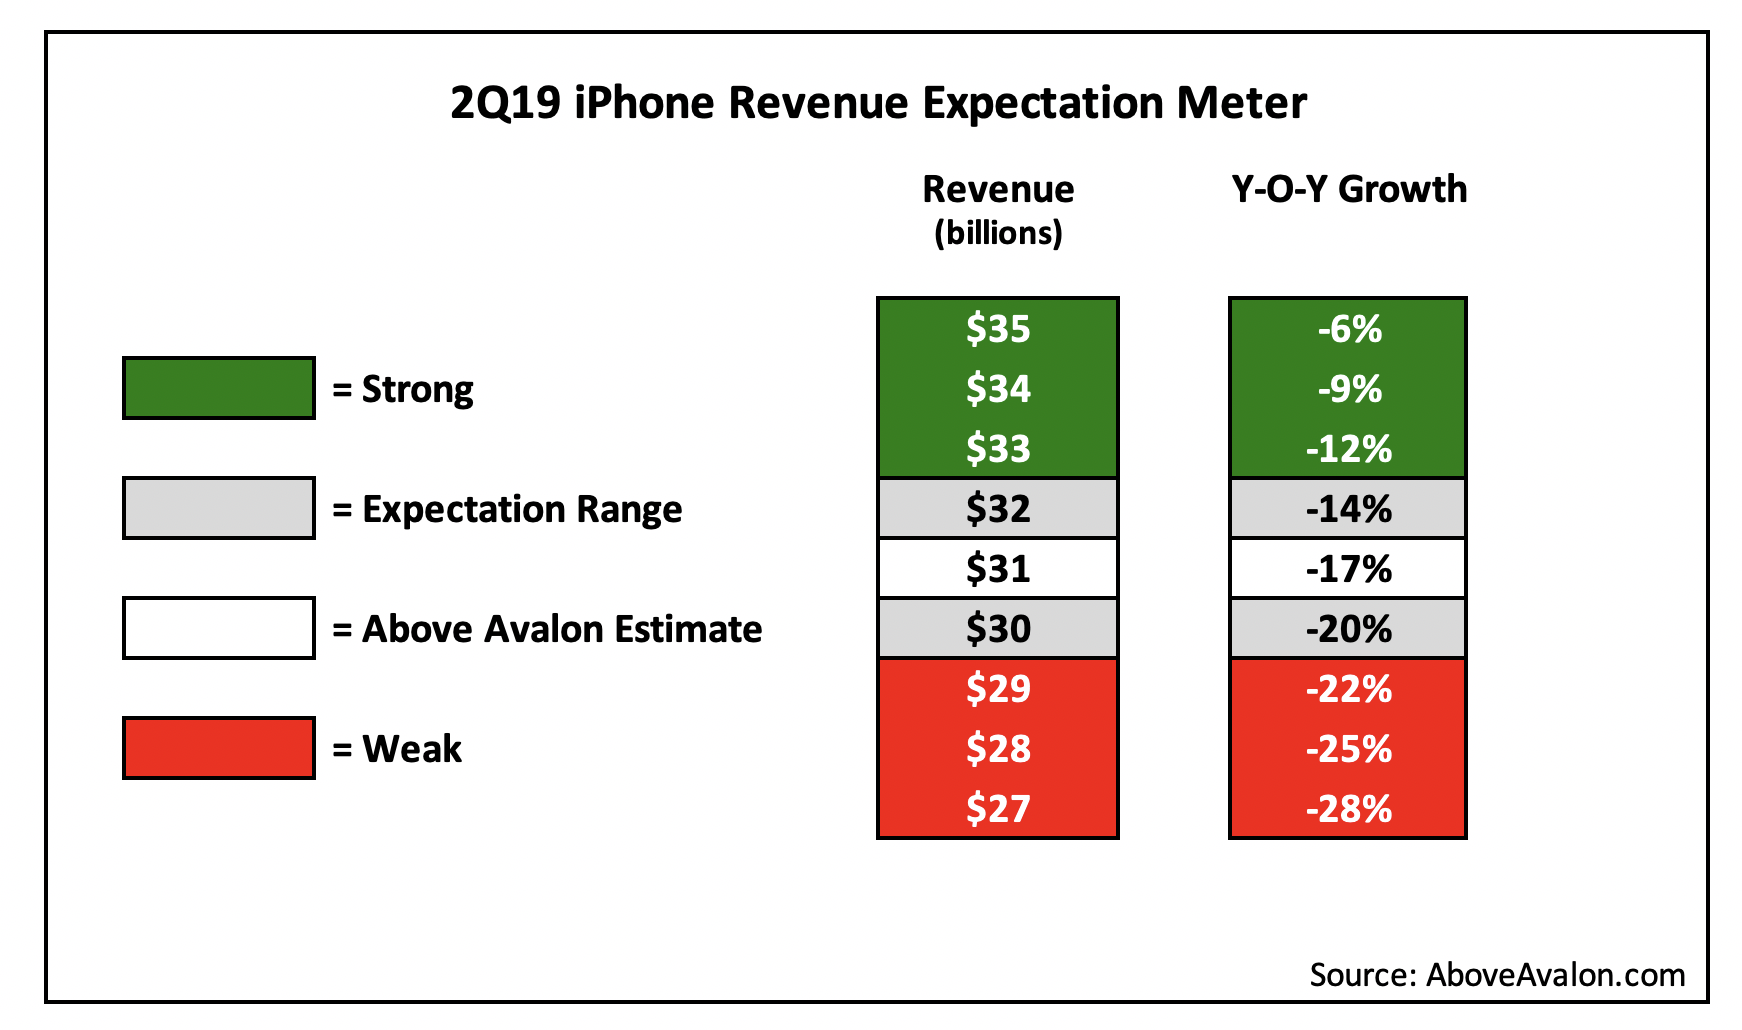 2Q19 iPhone Revenue Expectation Meter (AboveAvalon.com)